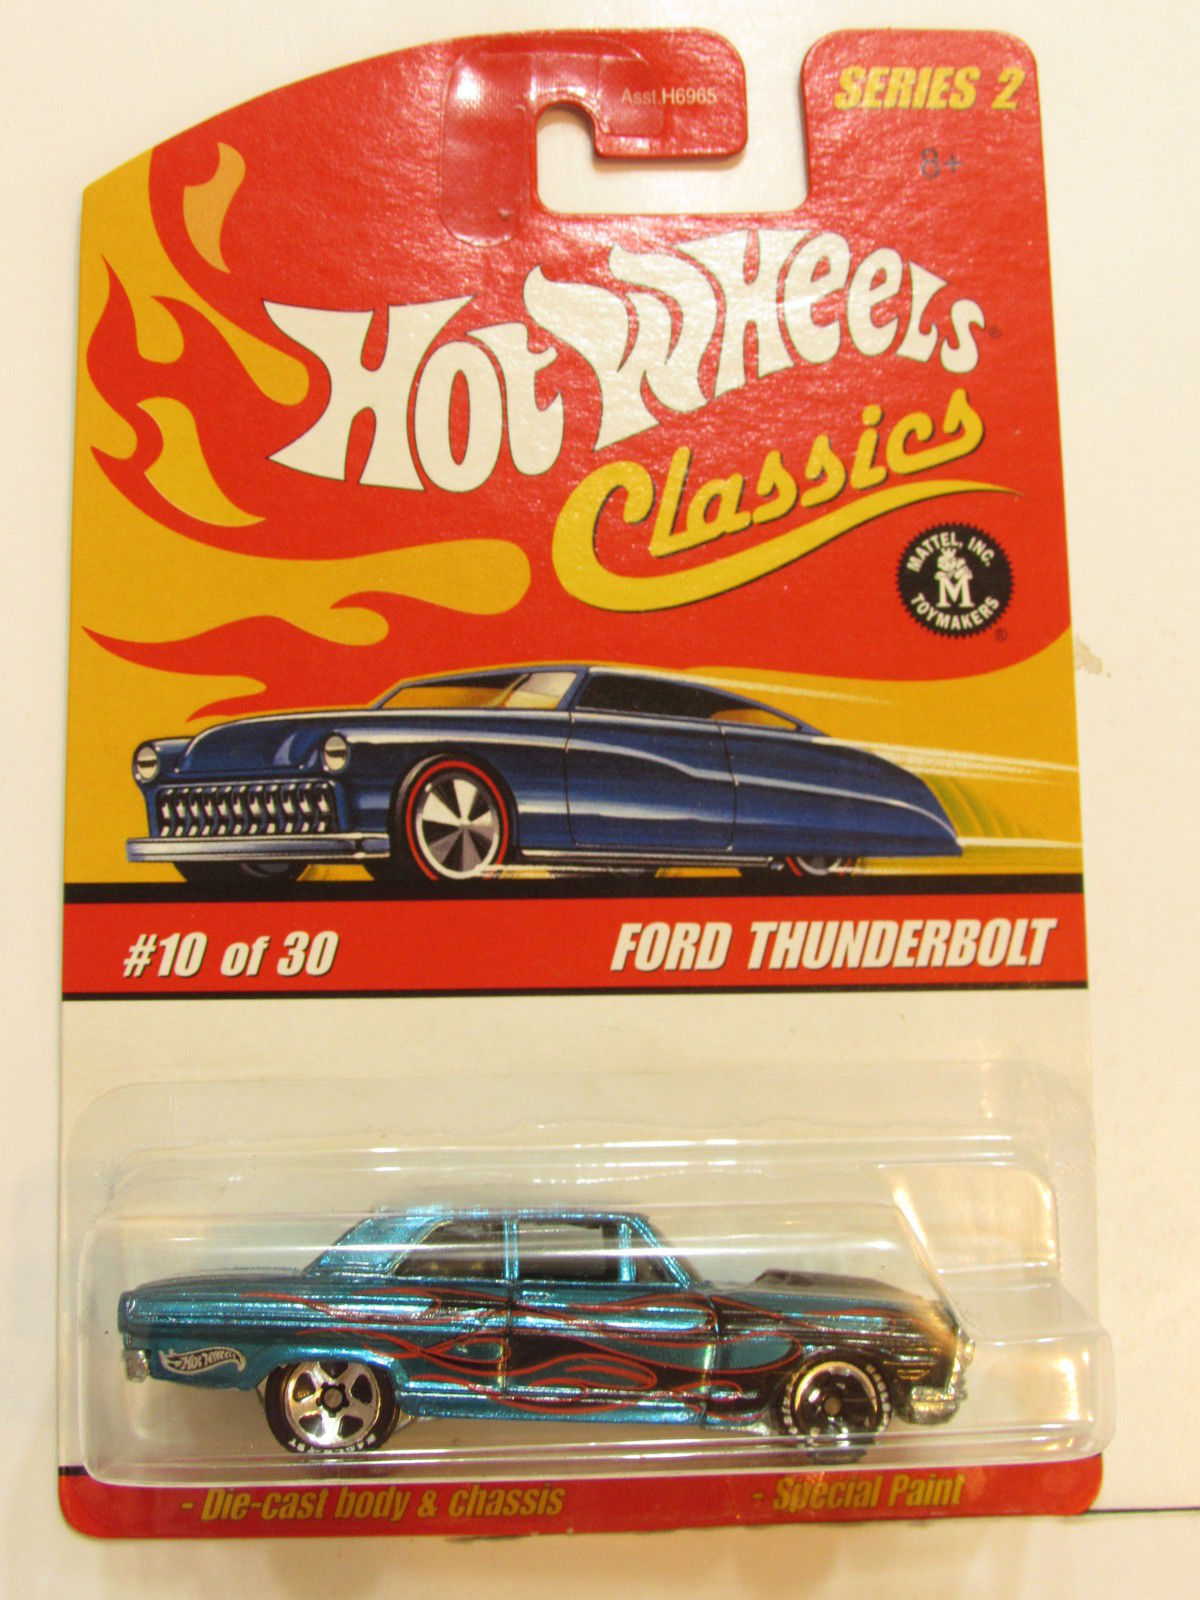 HOT WHEELS CLASSICS SERIES 2 #10/30 FORD THUNDERBOLT - WHEELS ERROR E+